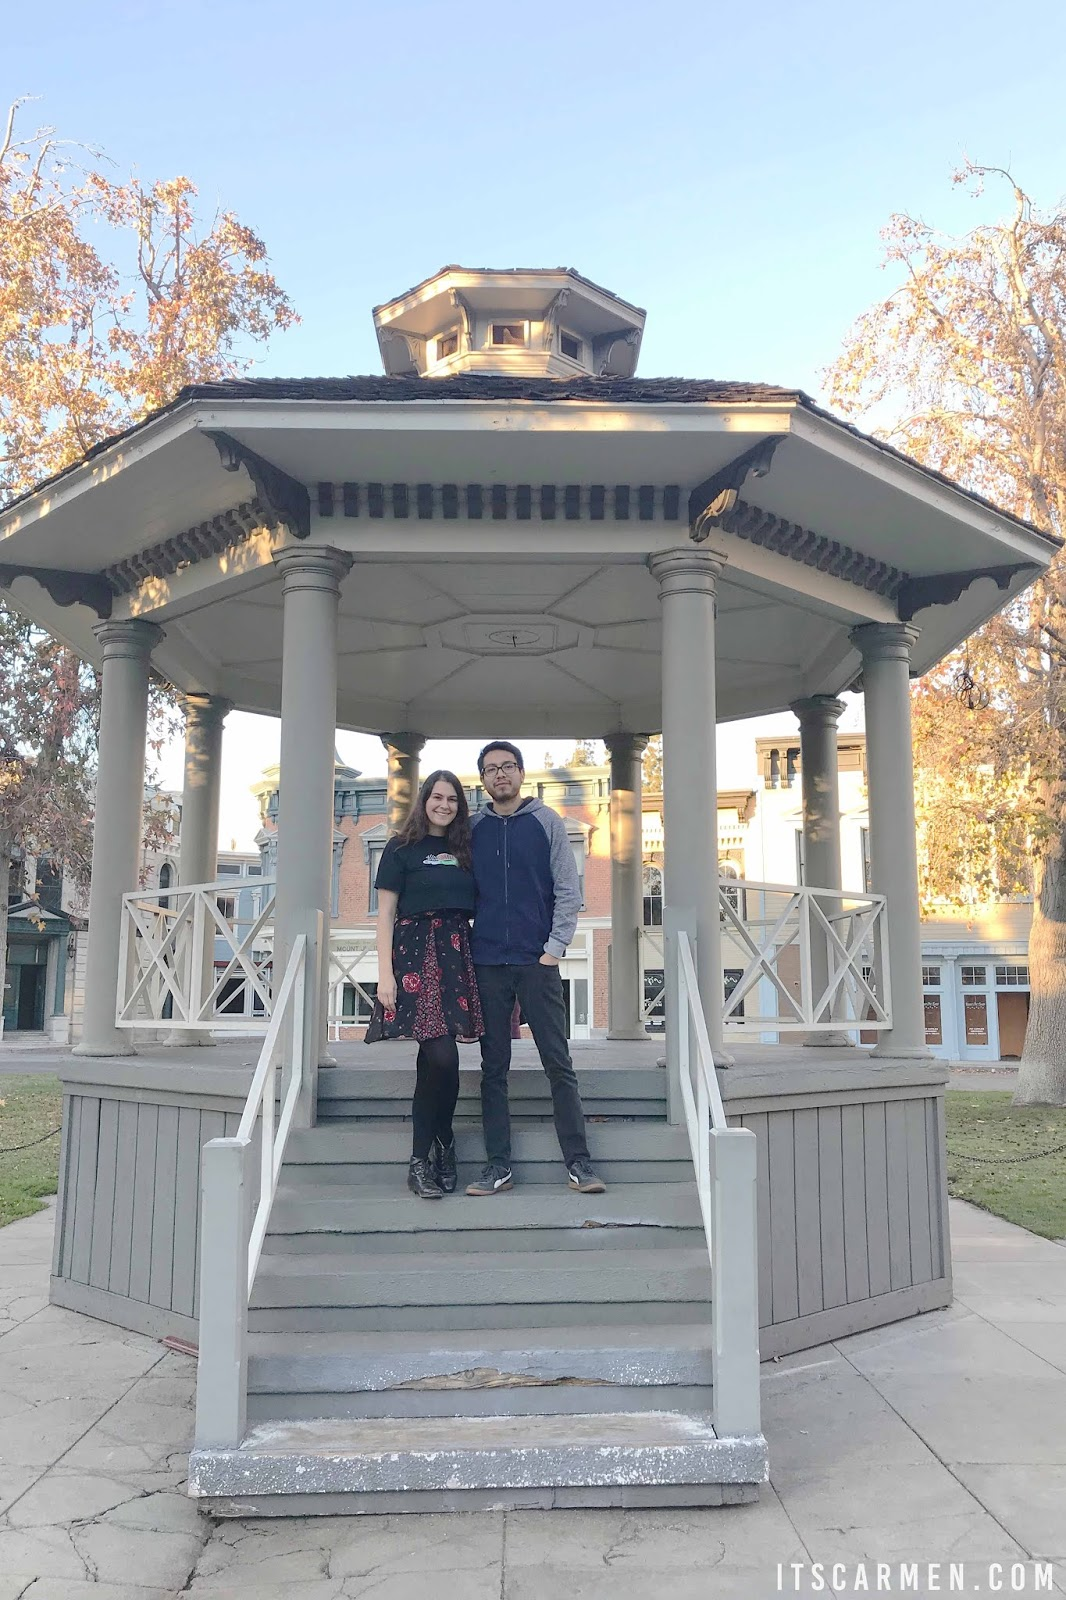 The iconic gazebo in Stars Hollow Where Was Gilmore Girls Filmed? Where Is Stars Hollow?